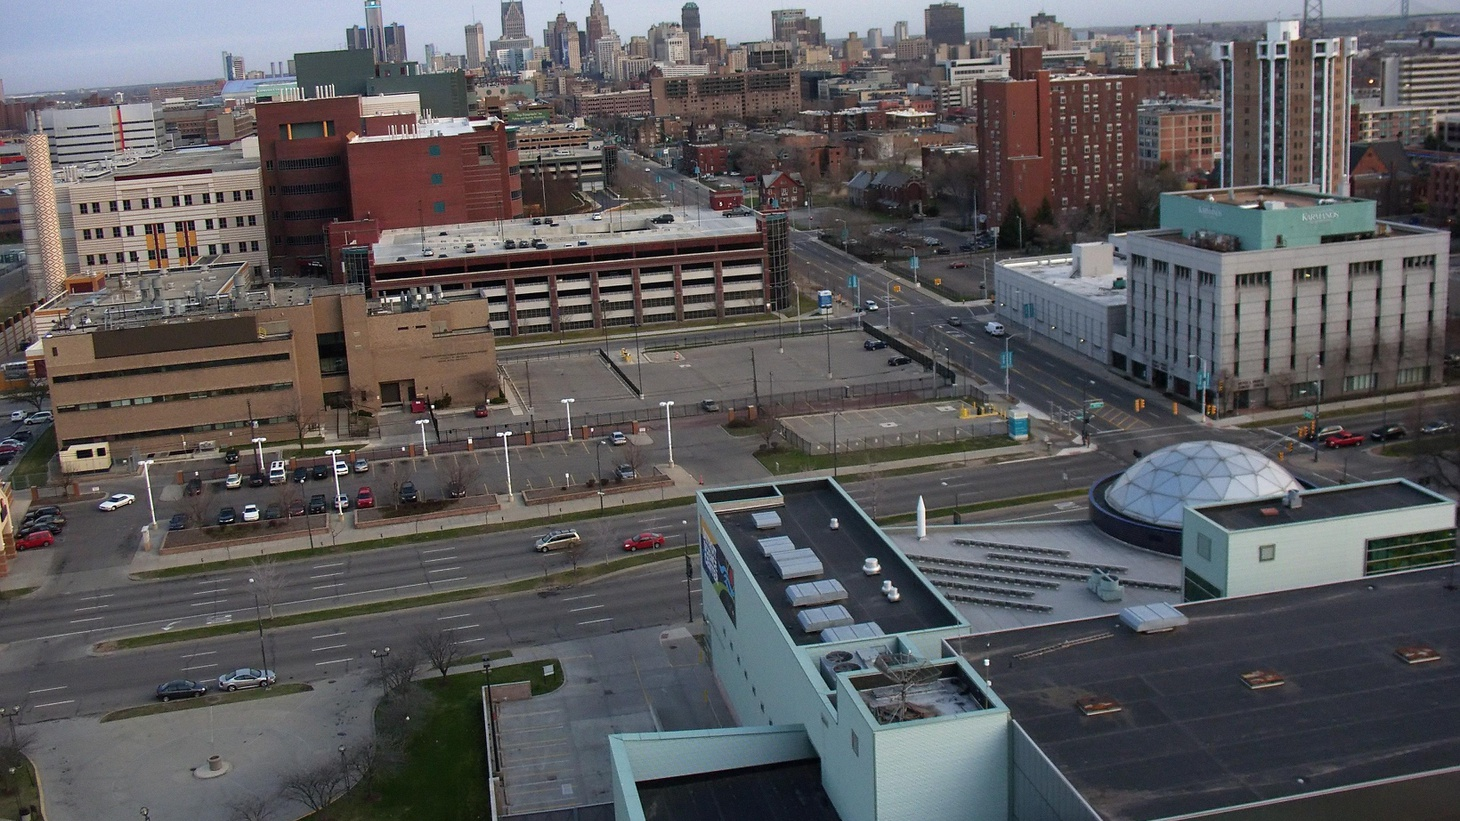 Detroit is America's poster child for urban decay. Can it be re-invented on a smaller scale? Could it become a model for urban restoration in other parts of the country?